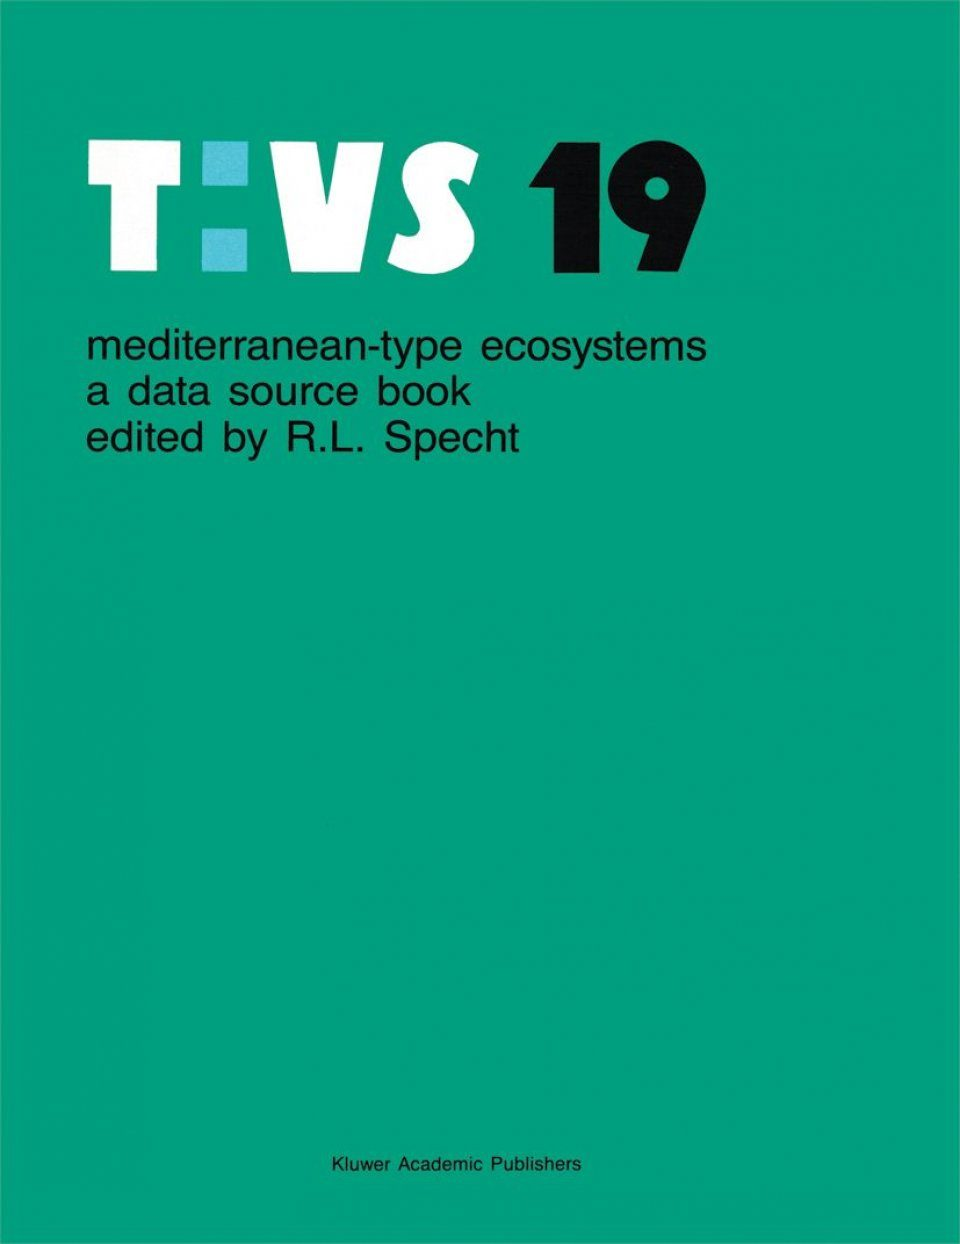 Mediterranean-Type Ecosystems: A Data Source Book